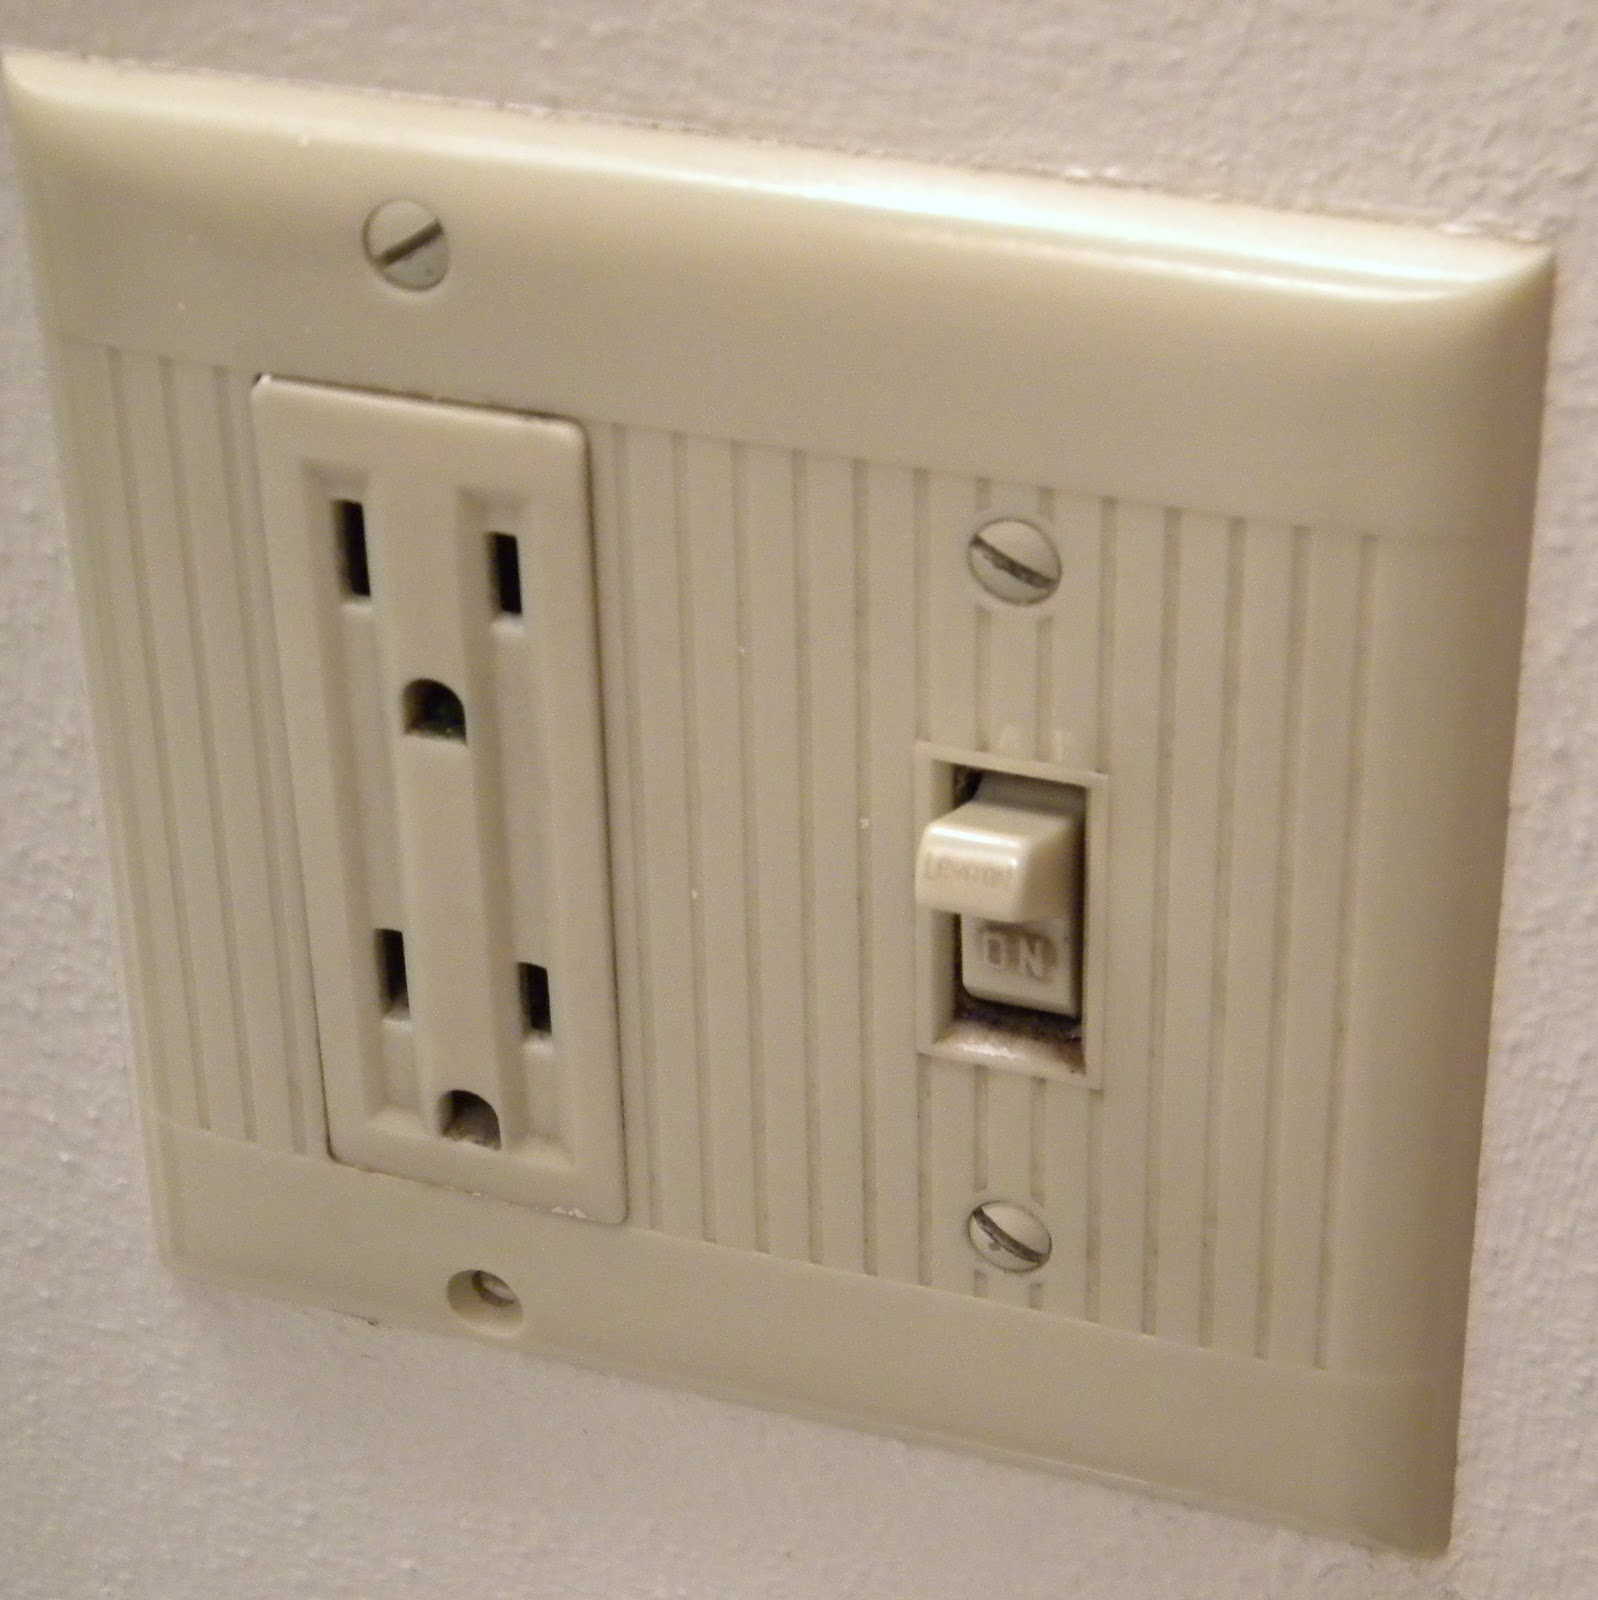 Does Anyone Have An Outlet Or Light Switch Cover That Looks Something Like This